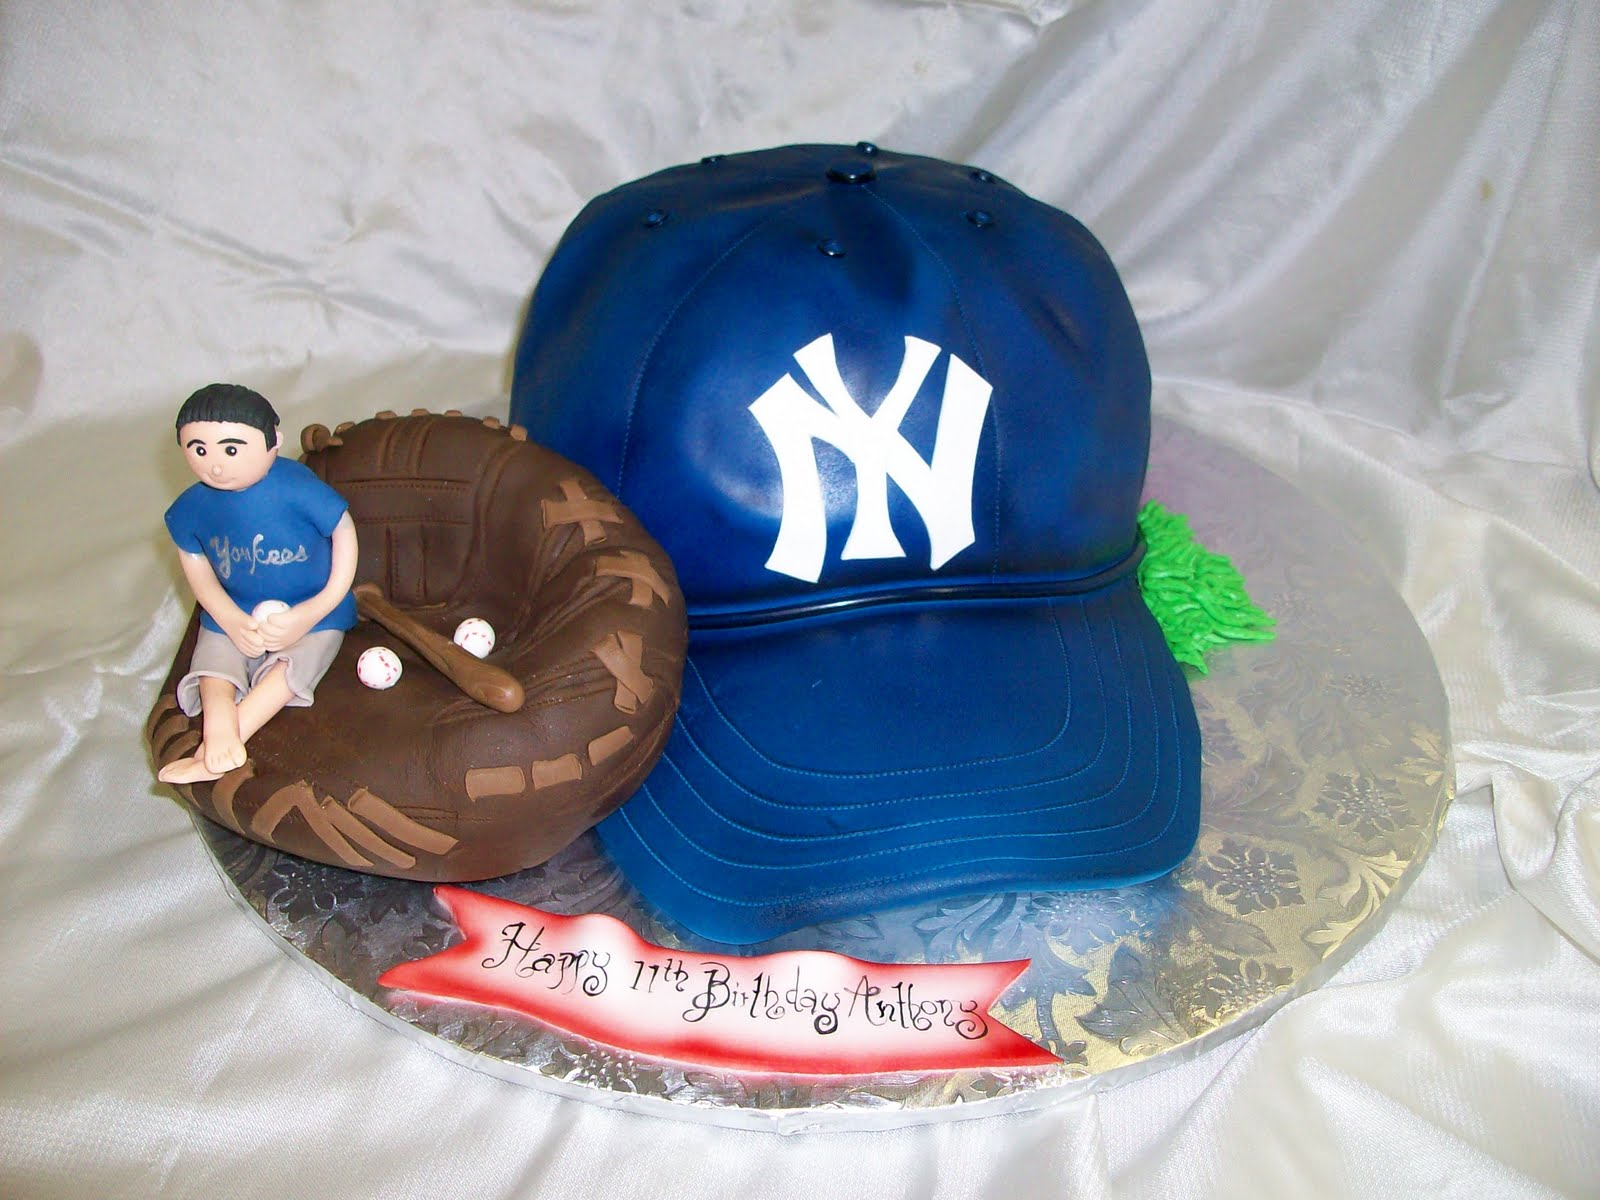 Cake Decorating Toppers Baseball Hat